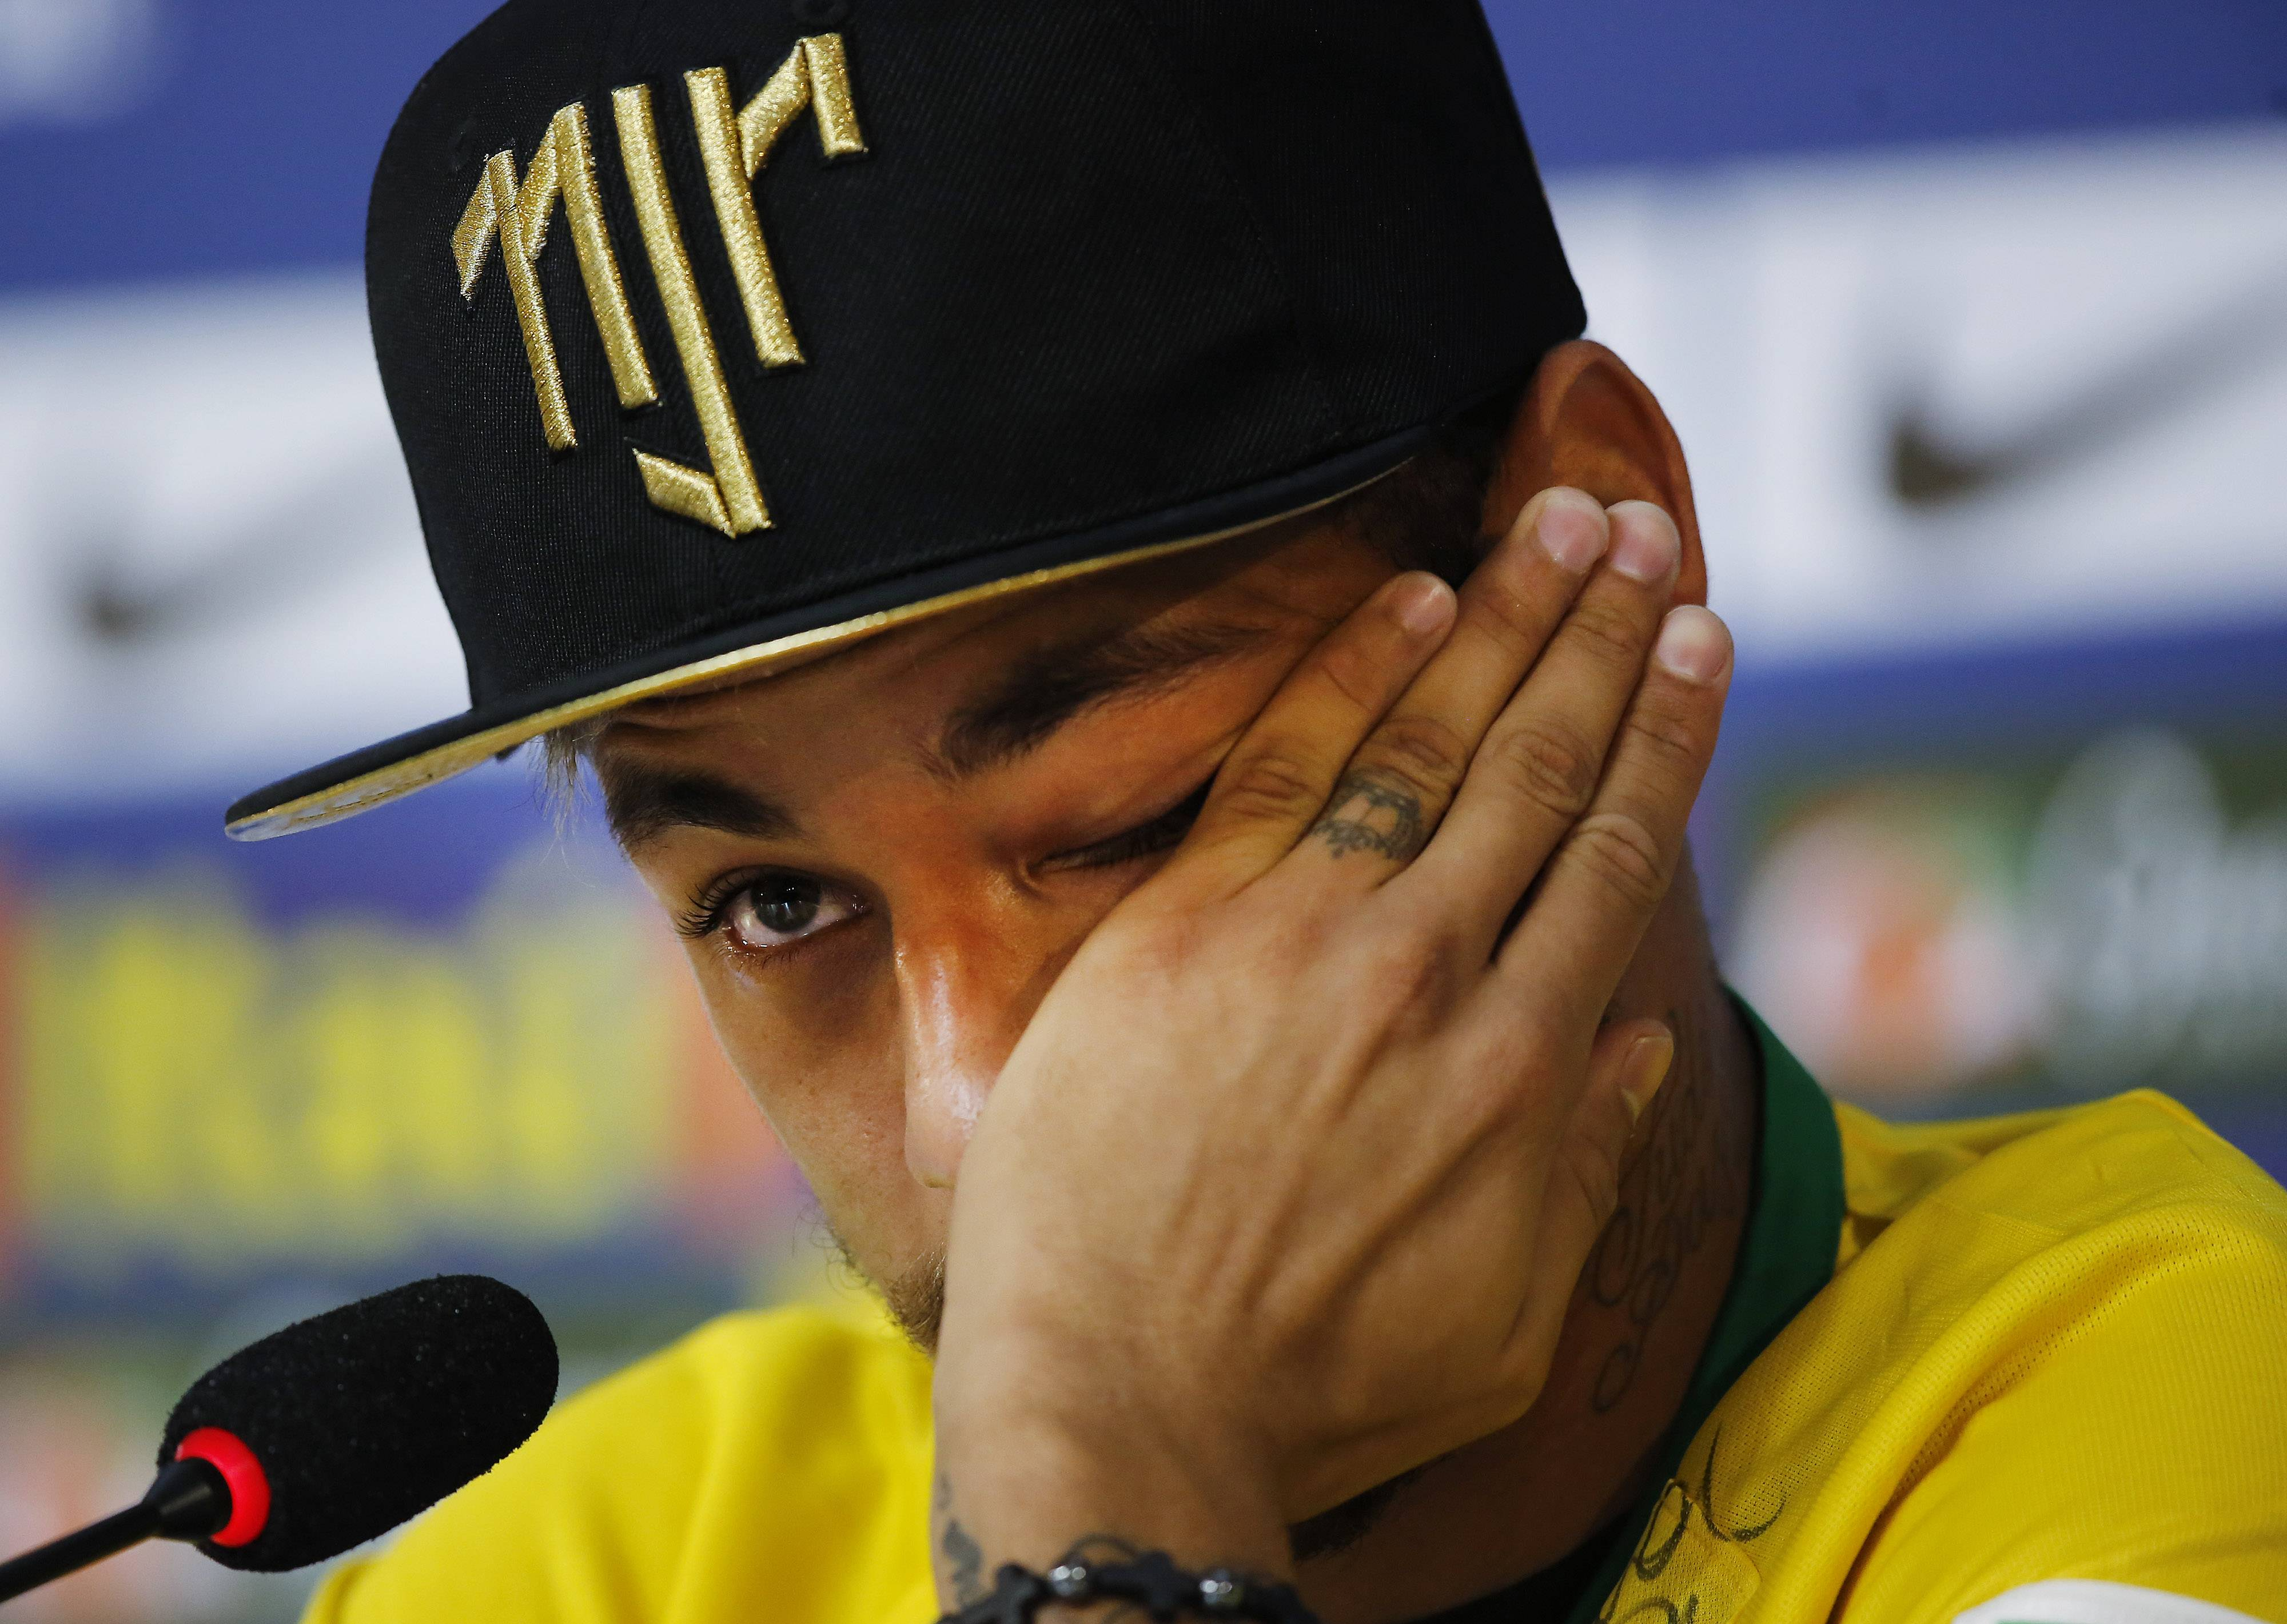 "Neymar became emotional when talking Thursday about the injury that ruled him out of the World Cup, saying that if the knee to his back had been slightly more to one side he ""could be in a wheelchair"" right now. The Brazil striker cried as he recalled the injury, saying ""God blessed"" him and prevented a more serious injury. Neymar had to stop talking for several seconds, lowering his head and putting a hand in front of his eyes."